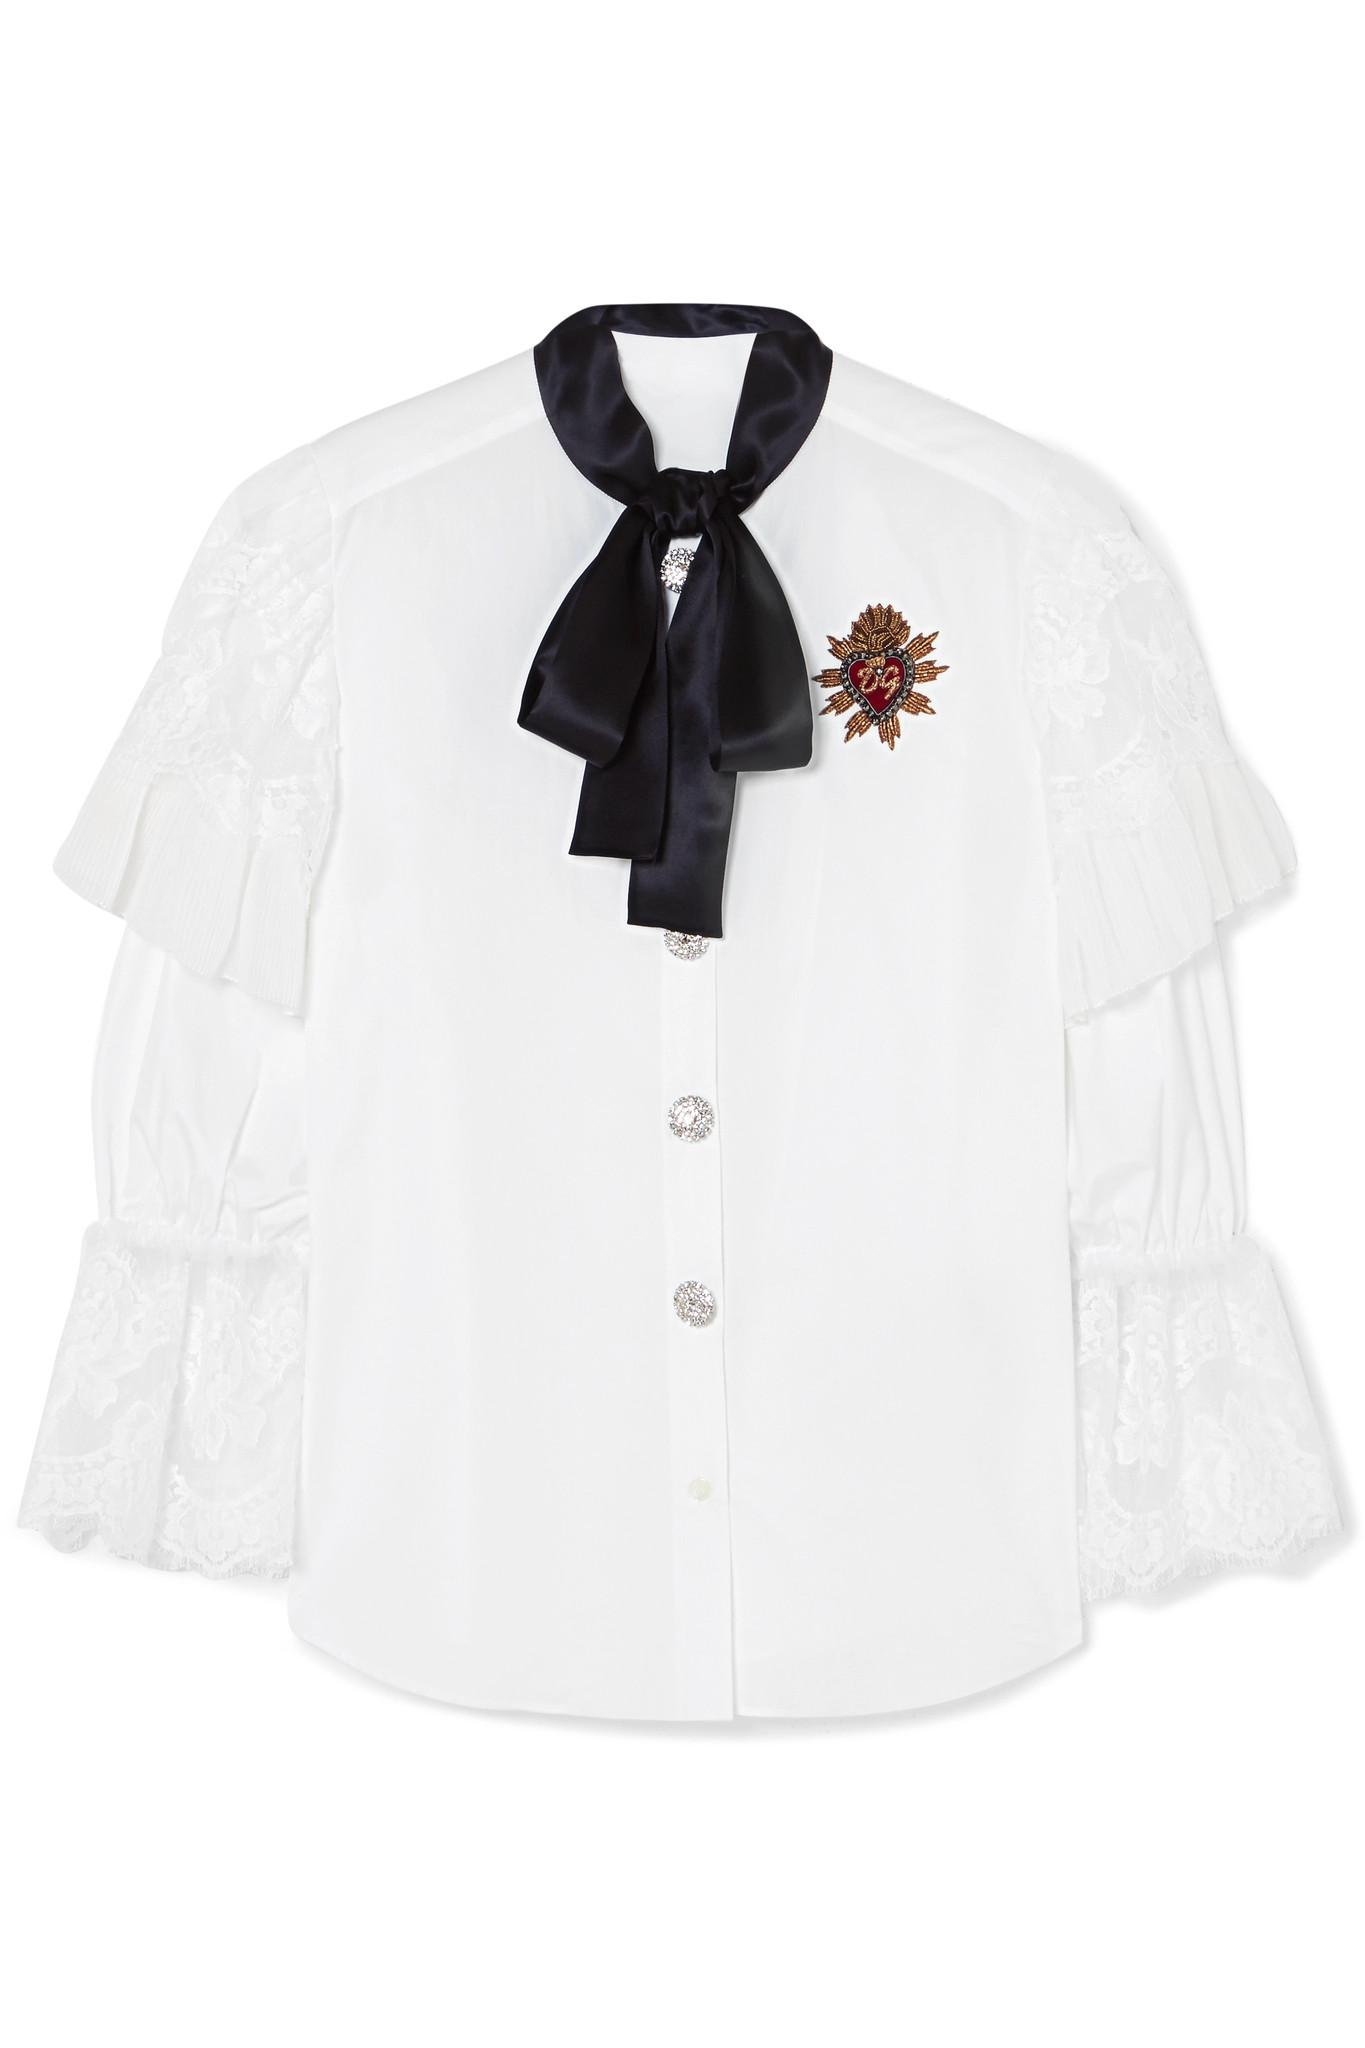 Browse Online Appliquéd Lace-trimmed Cotton-blend Poplin Blouse - White Dolce & Gabbana Pick A Best Cheap Price Cheap Sale For Nice Cheapest Cheap Online oZZcn